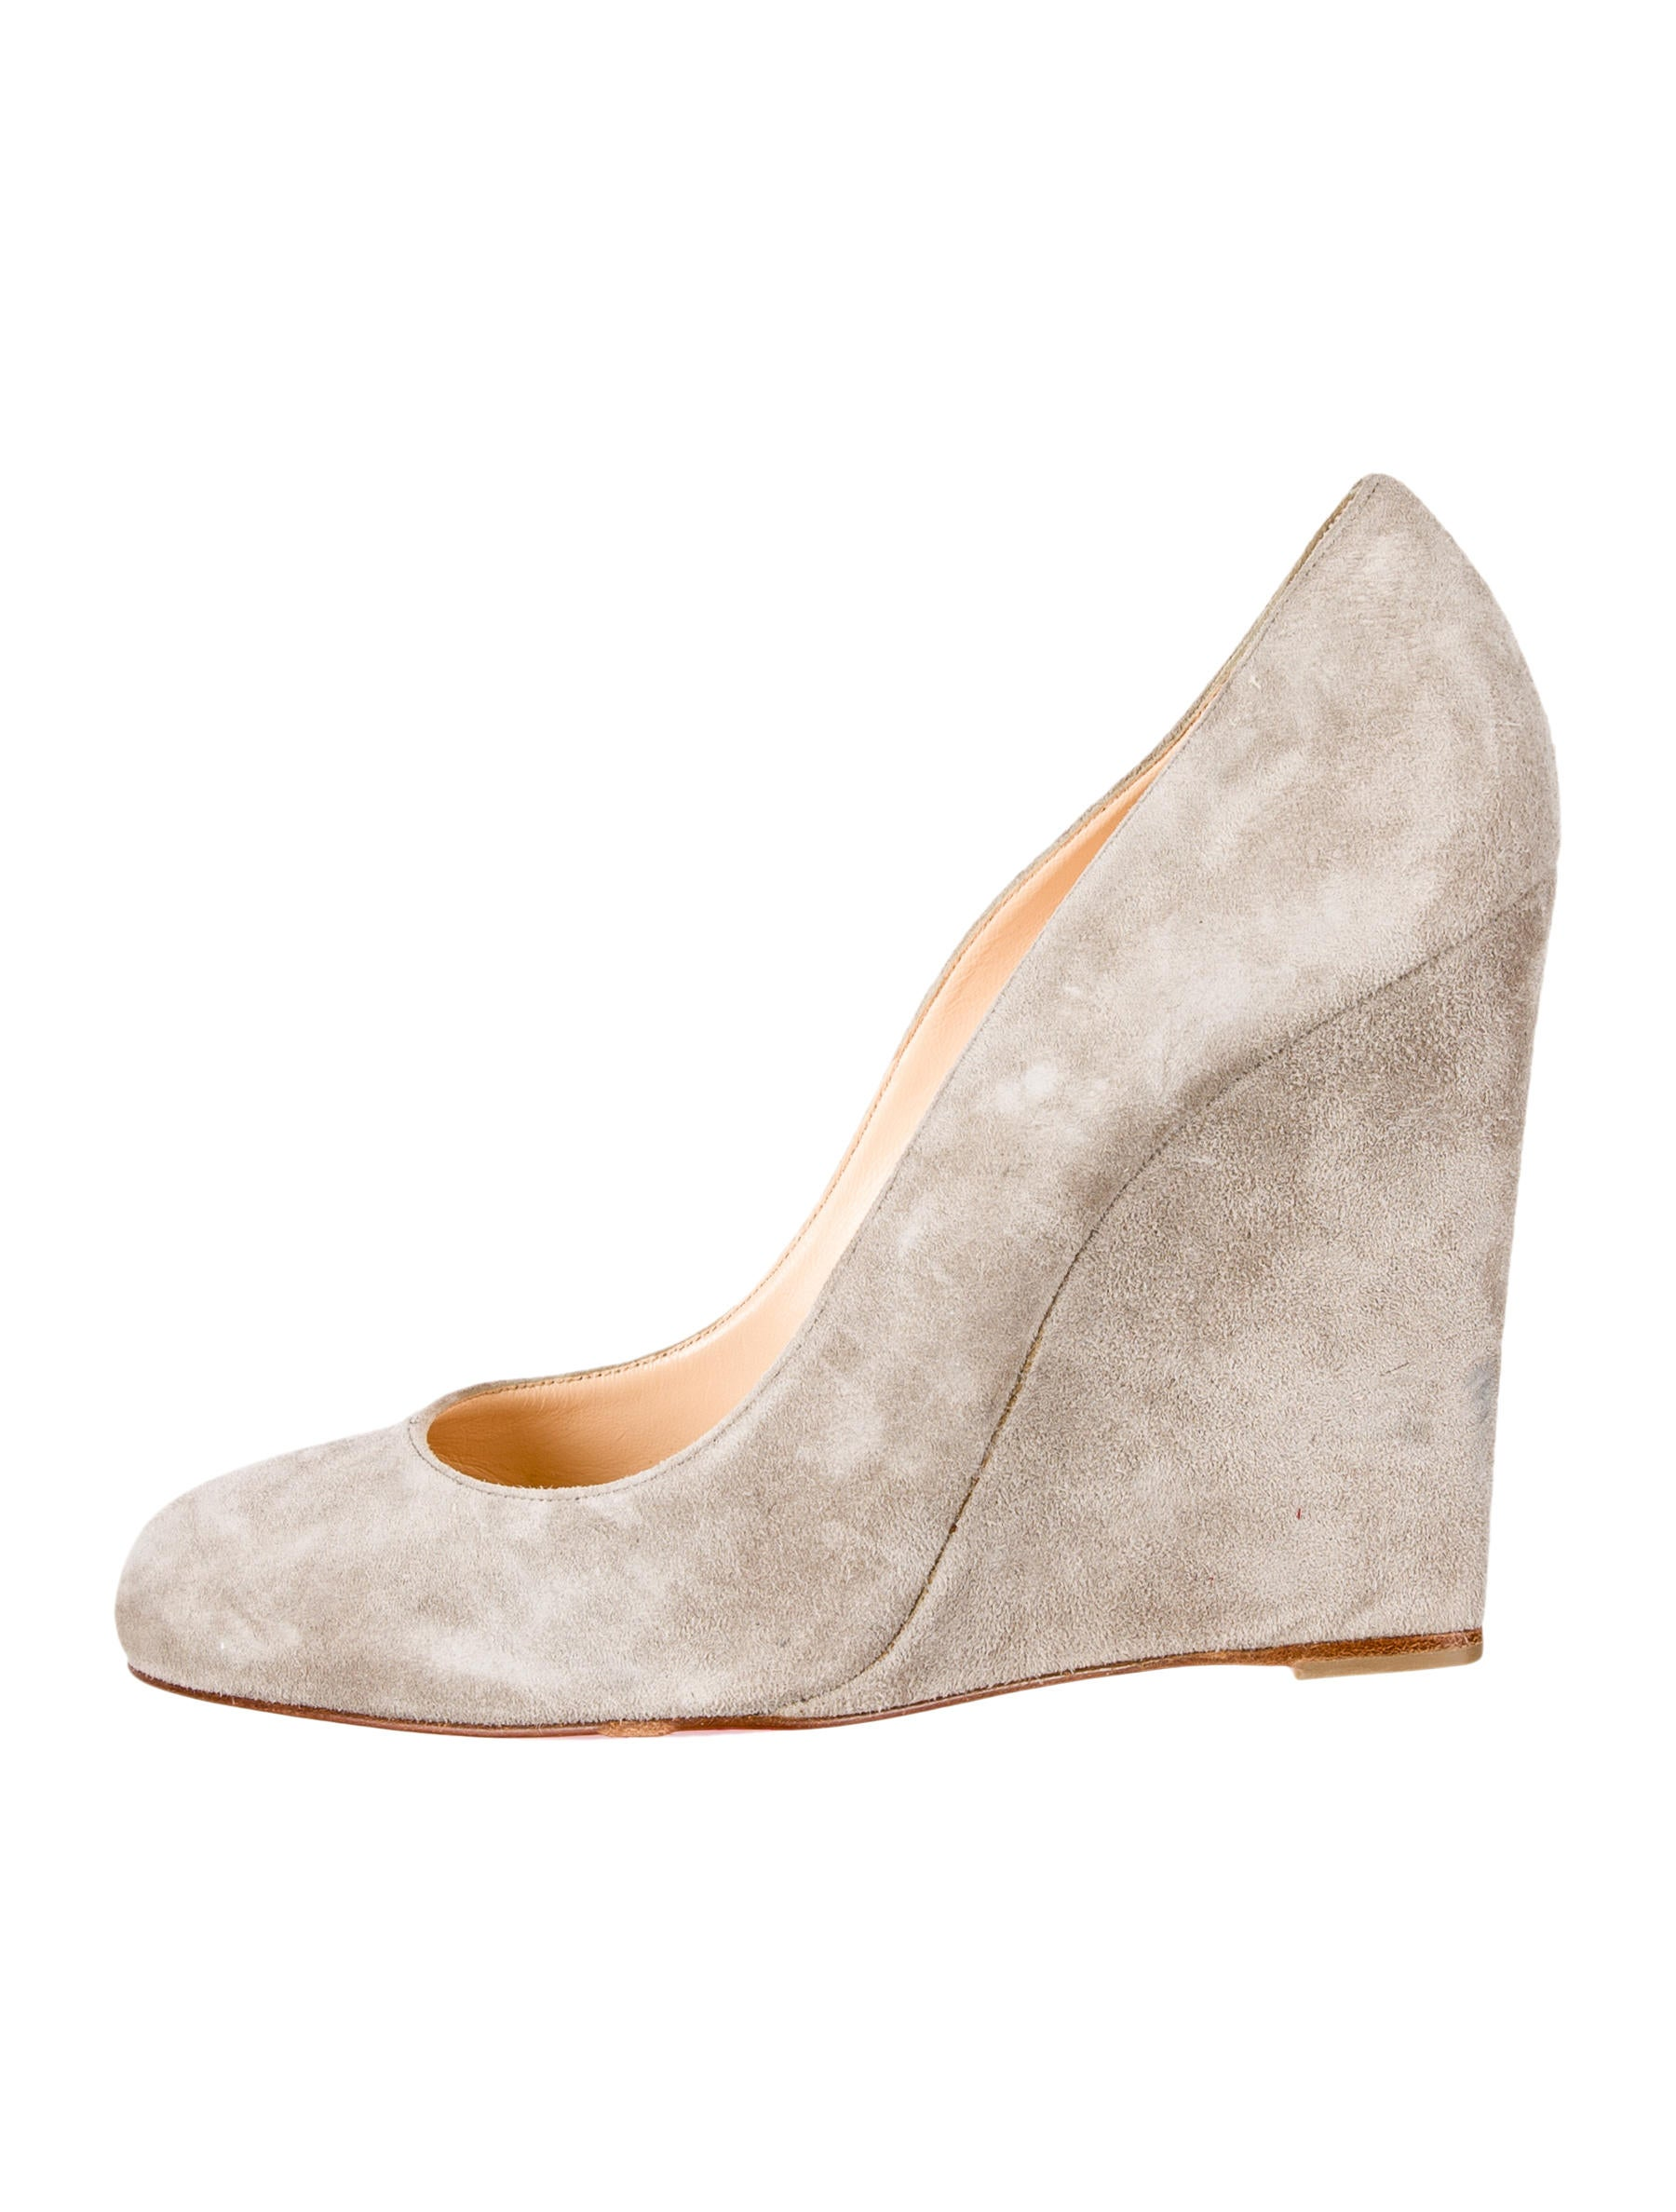 christian louboutin round-toe wedges Grey suede covered wedges ...